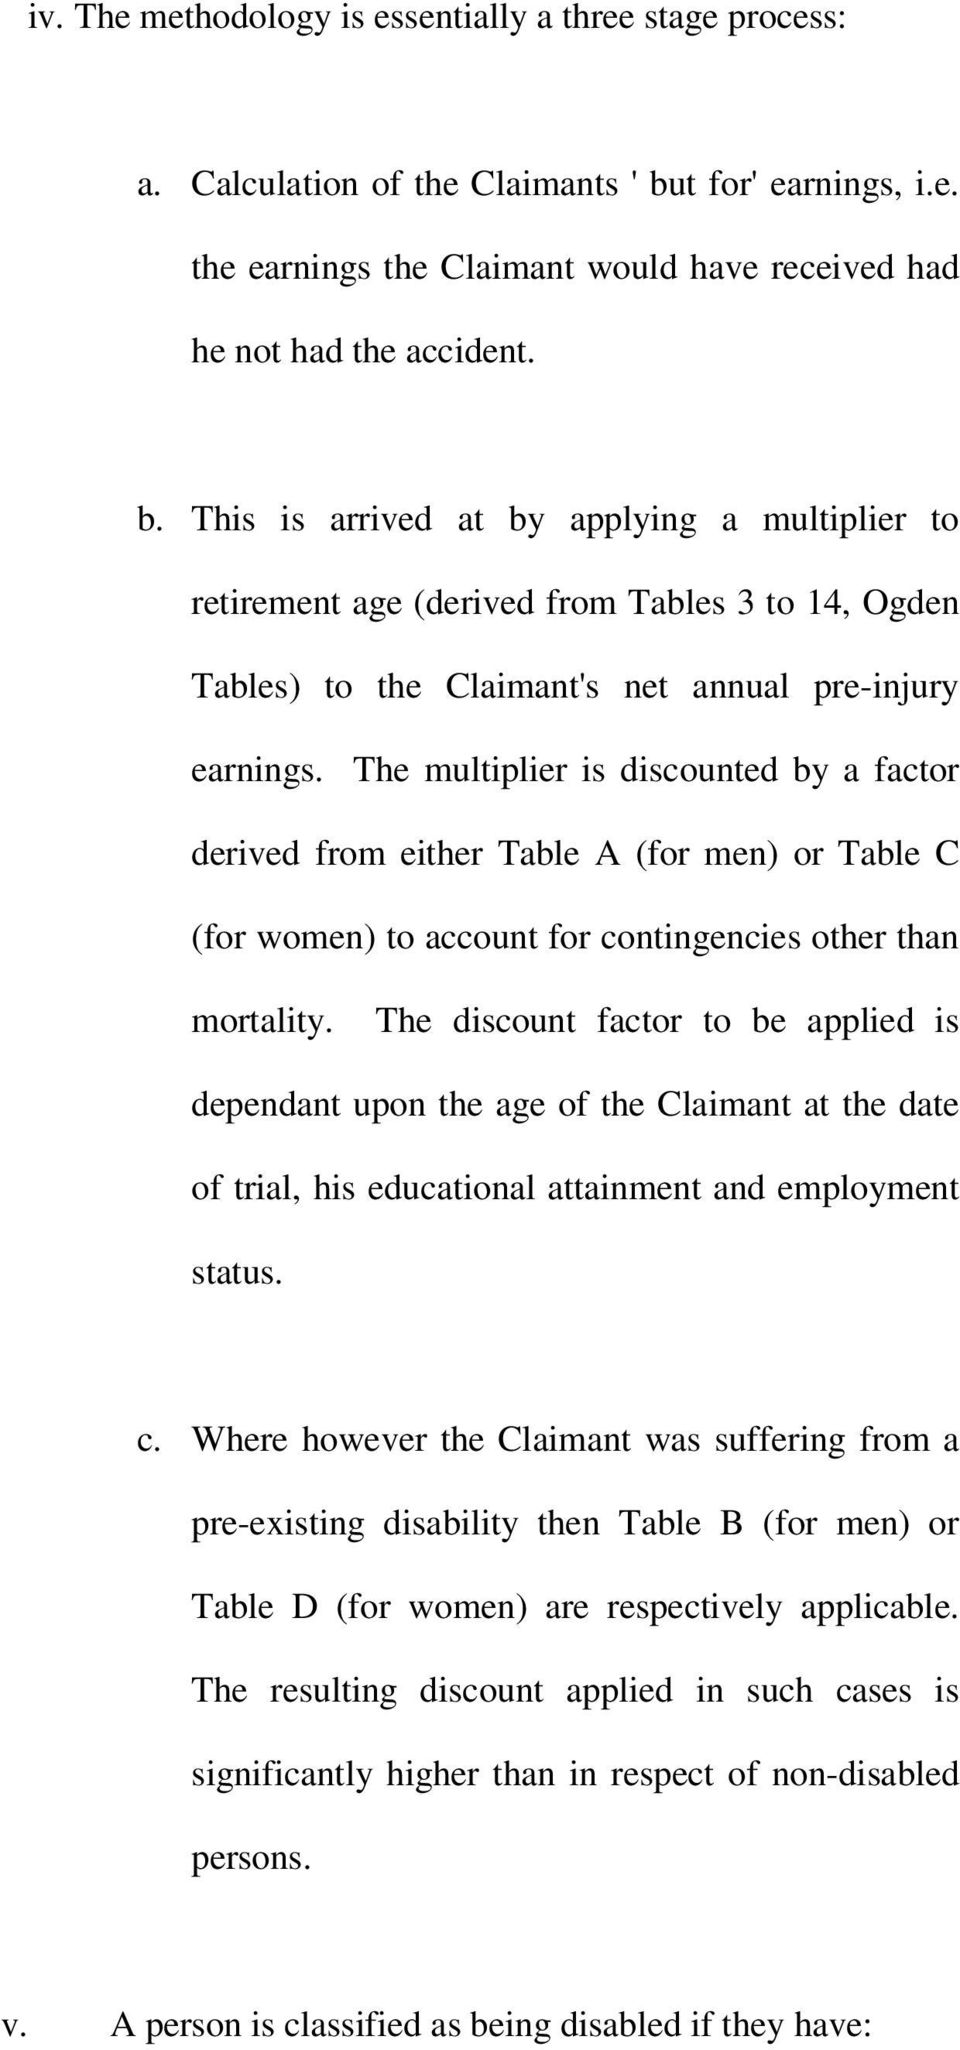 This is arrived at by applying a multiplier to retirement age (derived from Tables 3 to 14, Ogden Tables) to the Claimant's net annual pre-injury earnings.